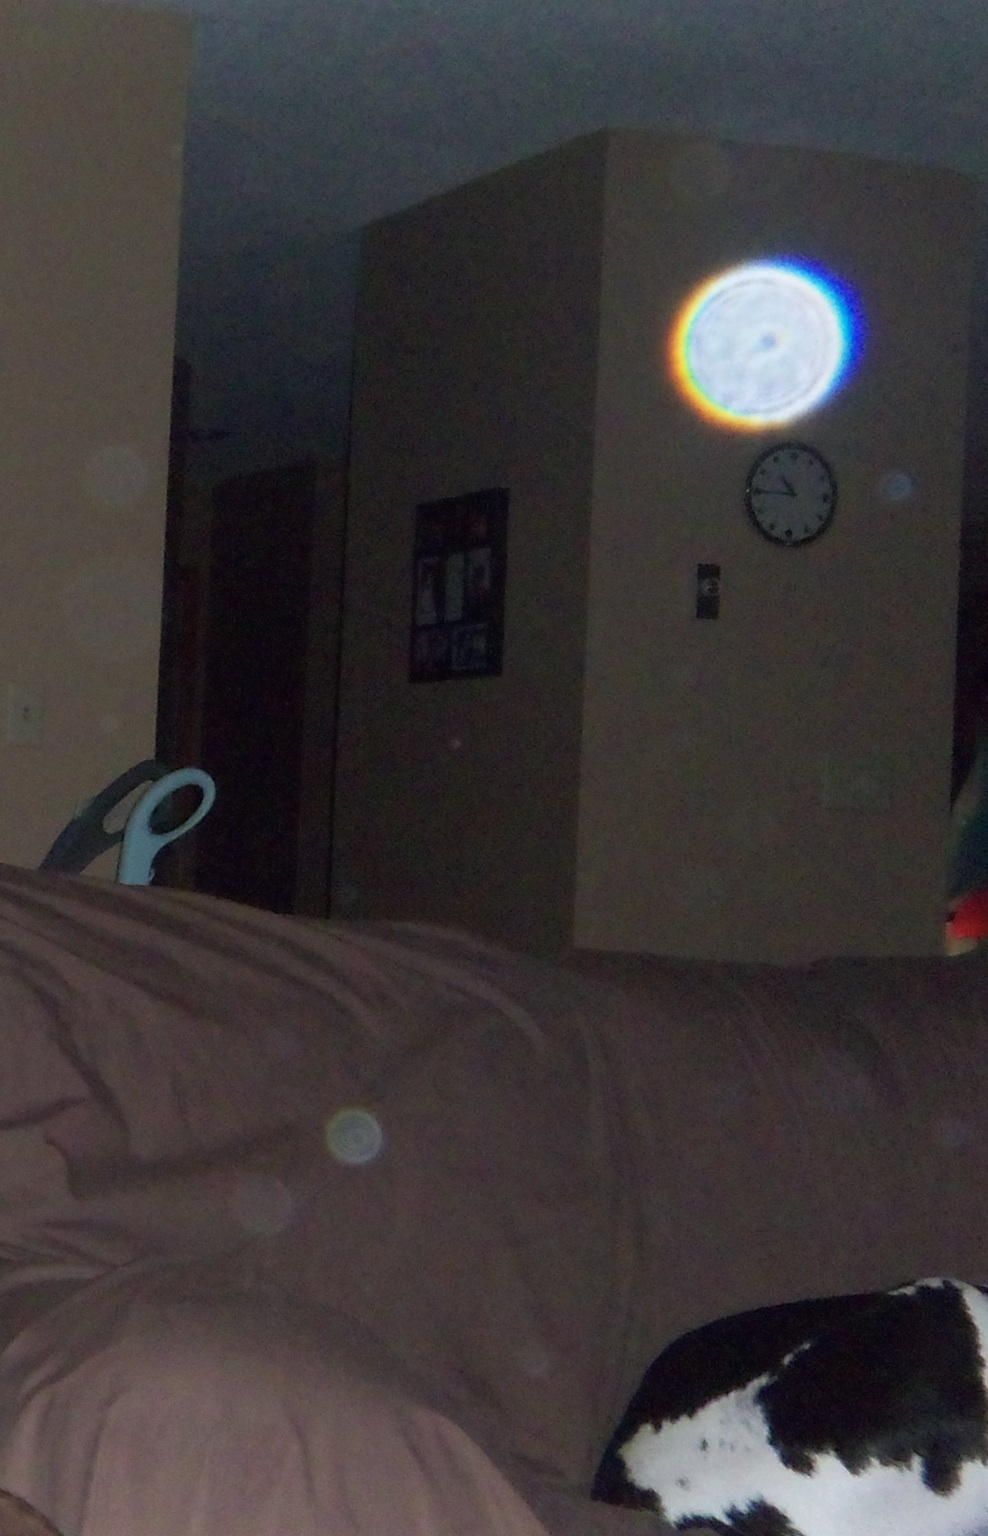 my daughters house, started seeing orbs in pictures after